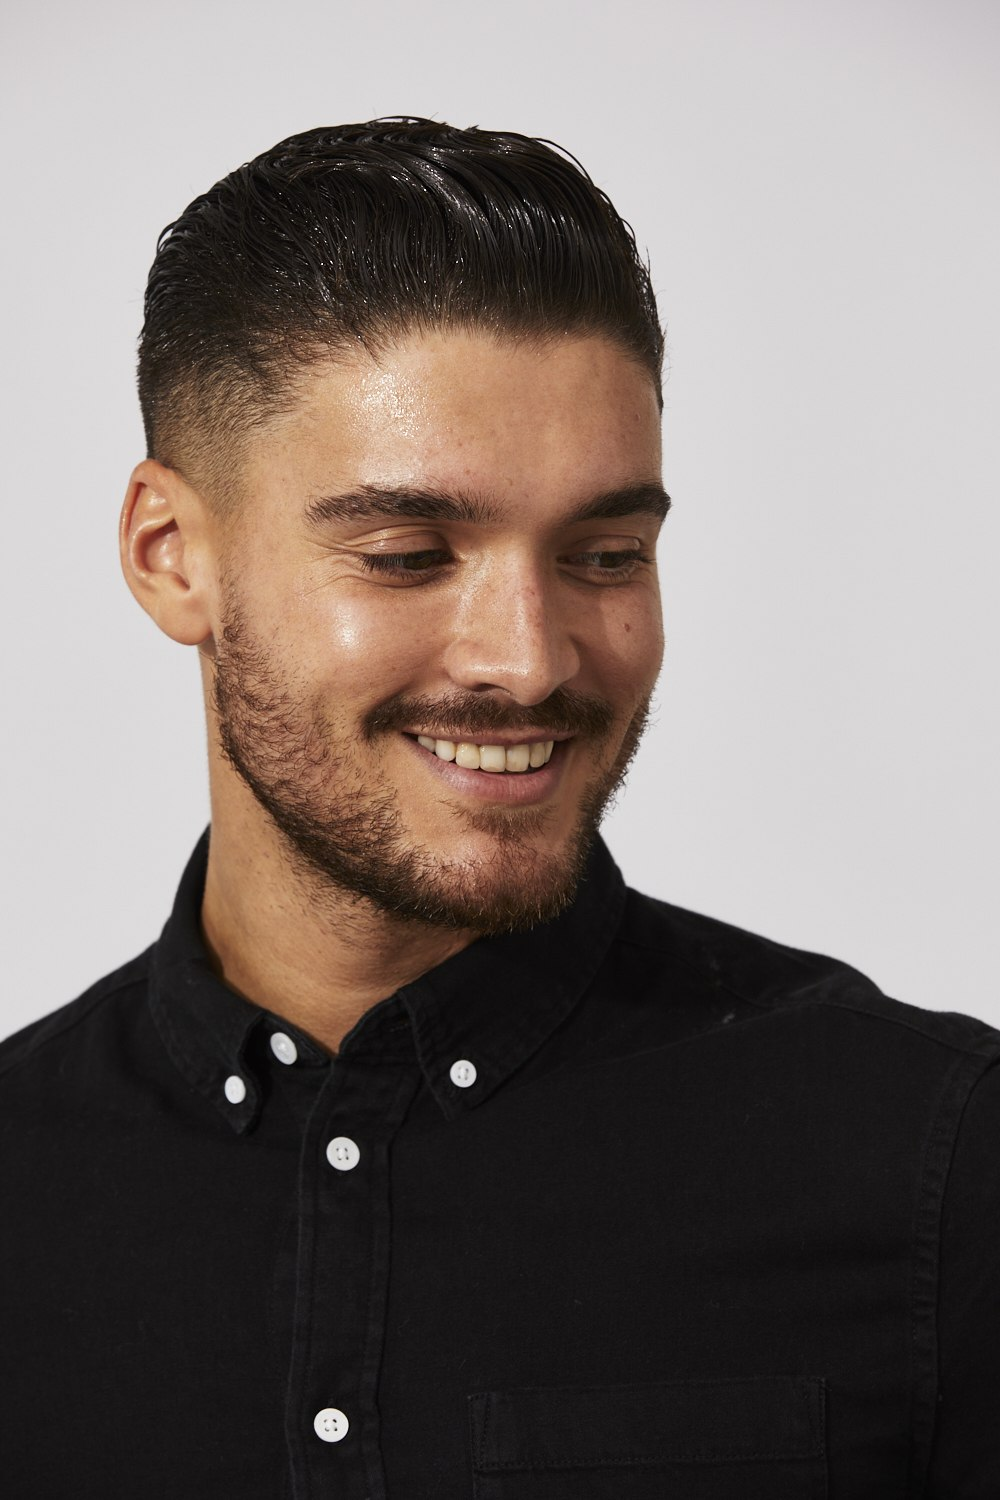 Best Haircuts For Men 65 Cuts For 2020 All Things Hair Us